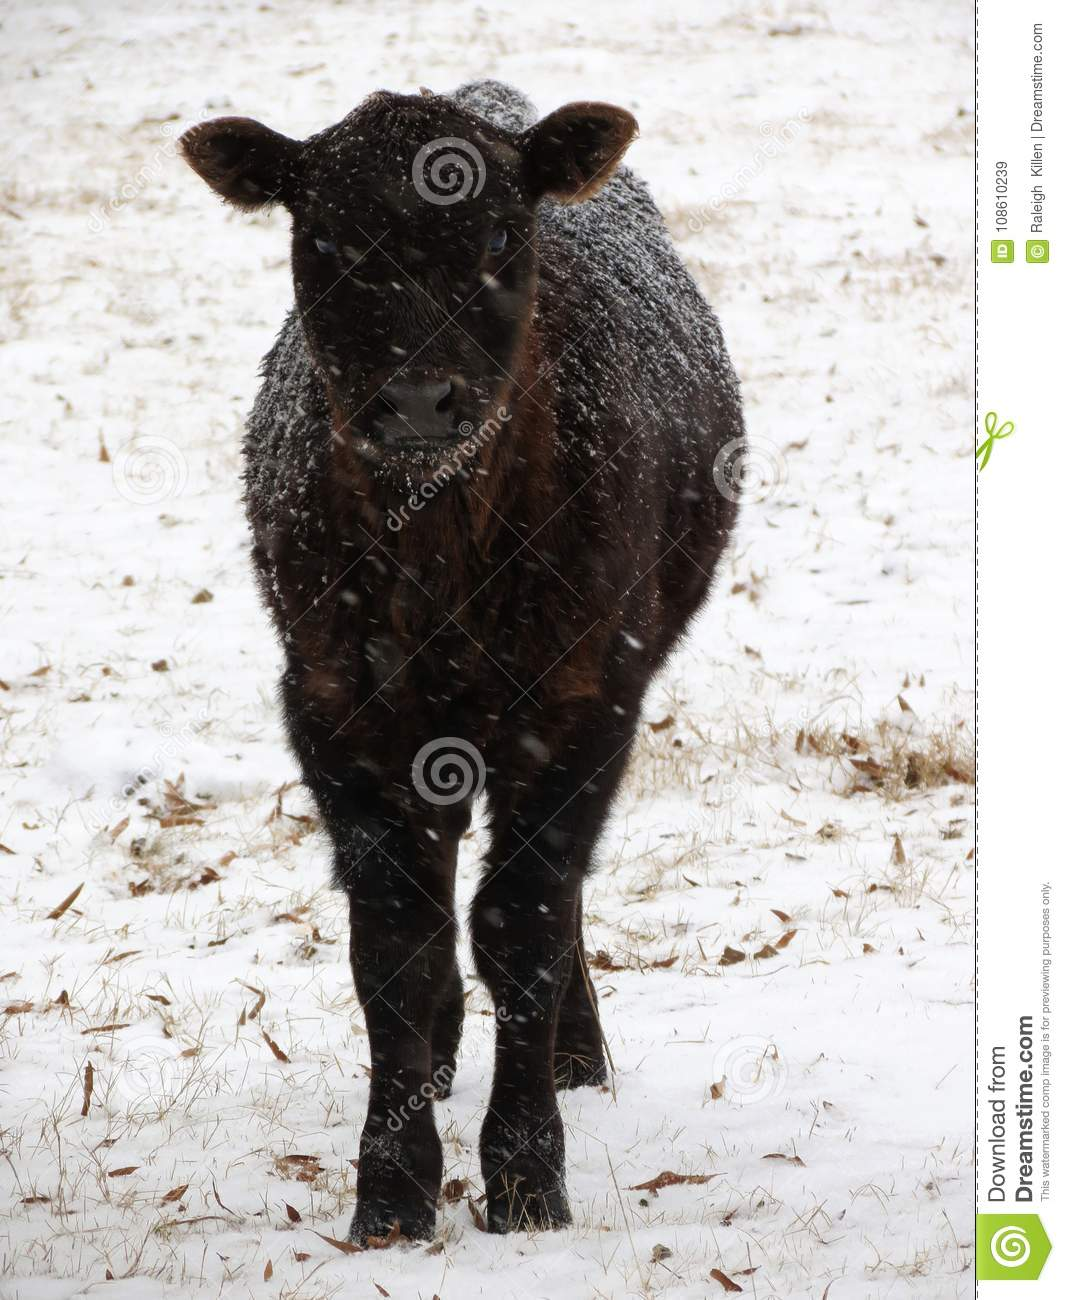 Lone calf stares deeply through the snow storm